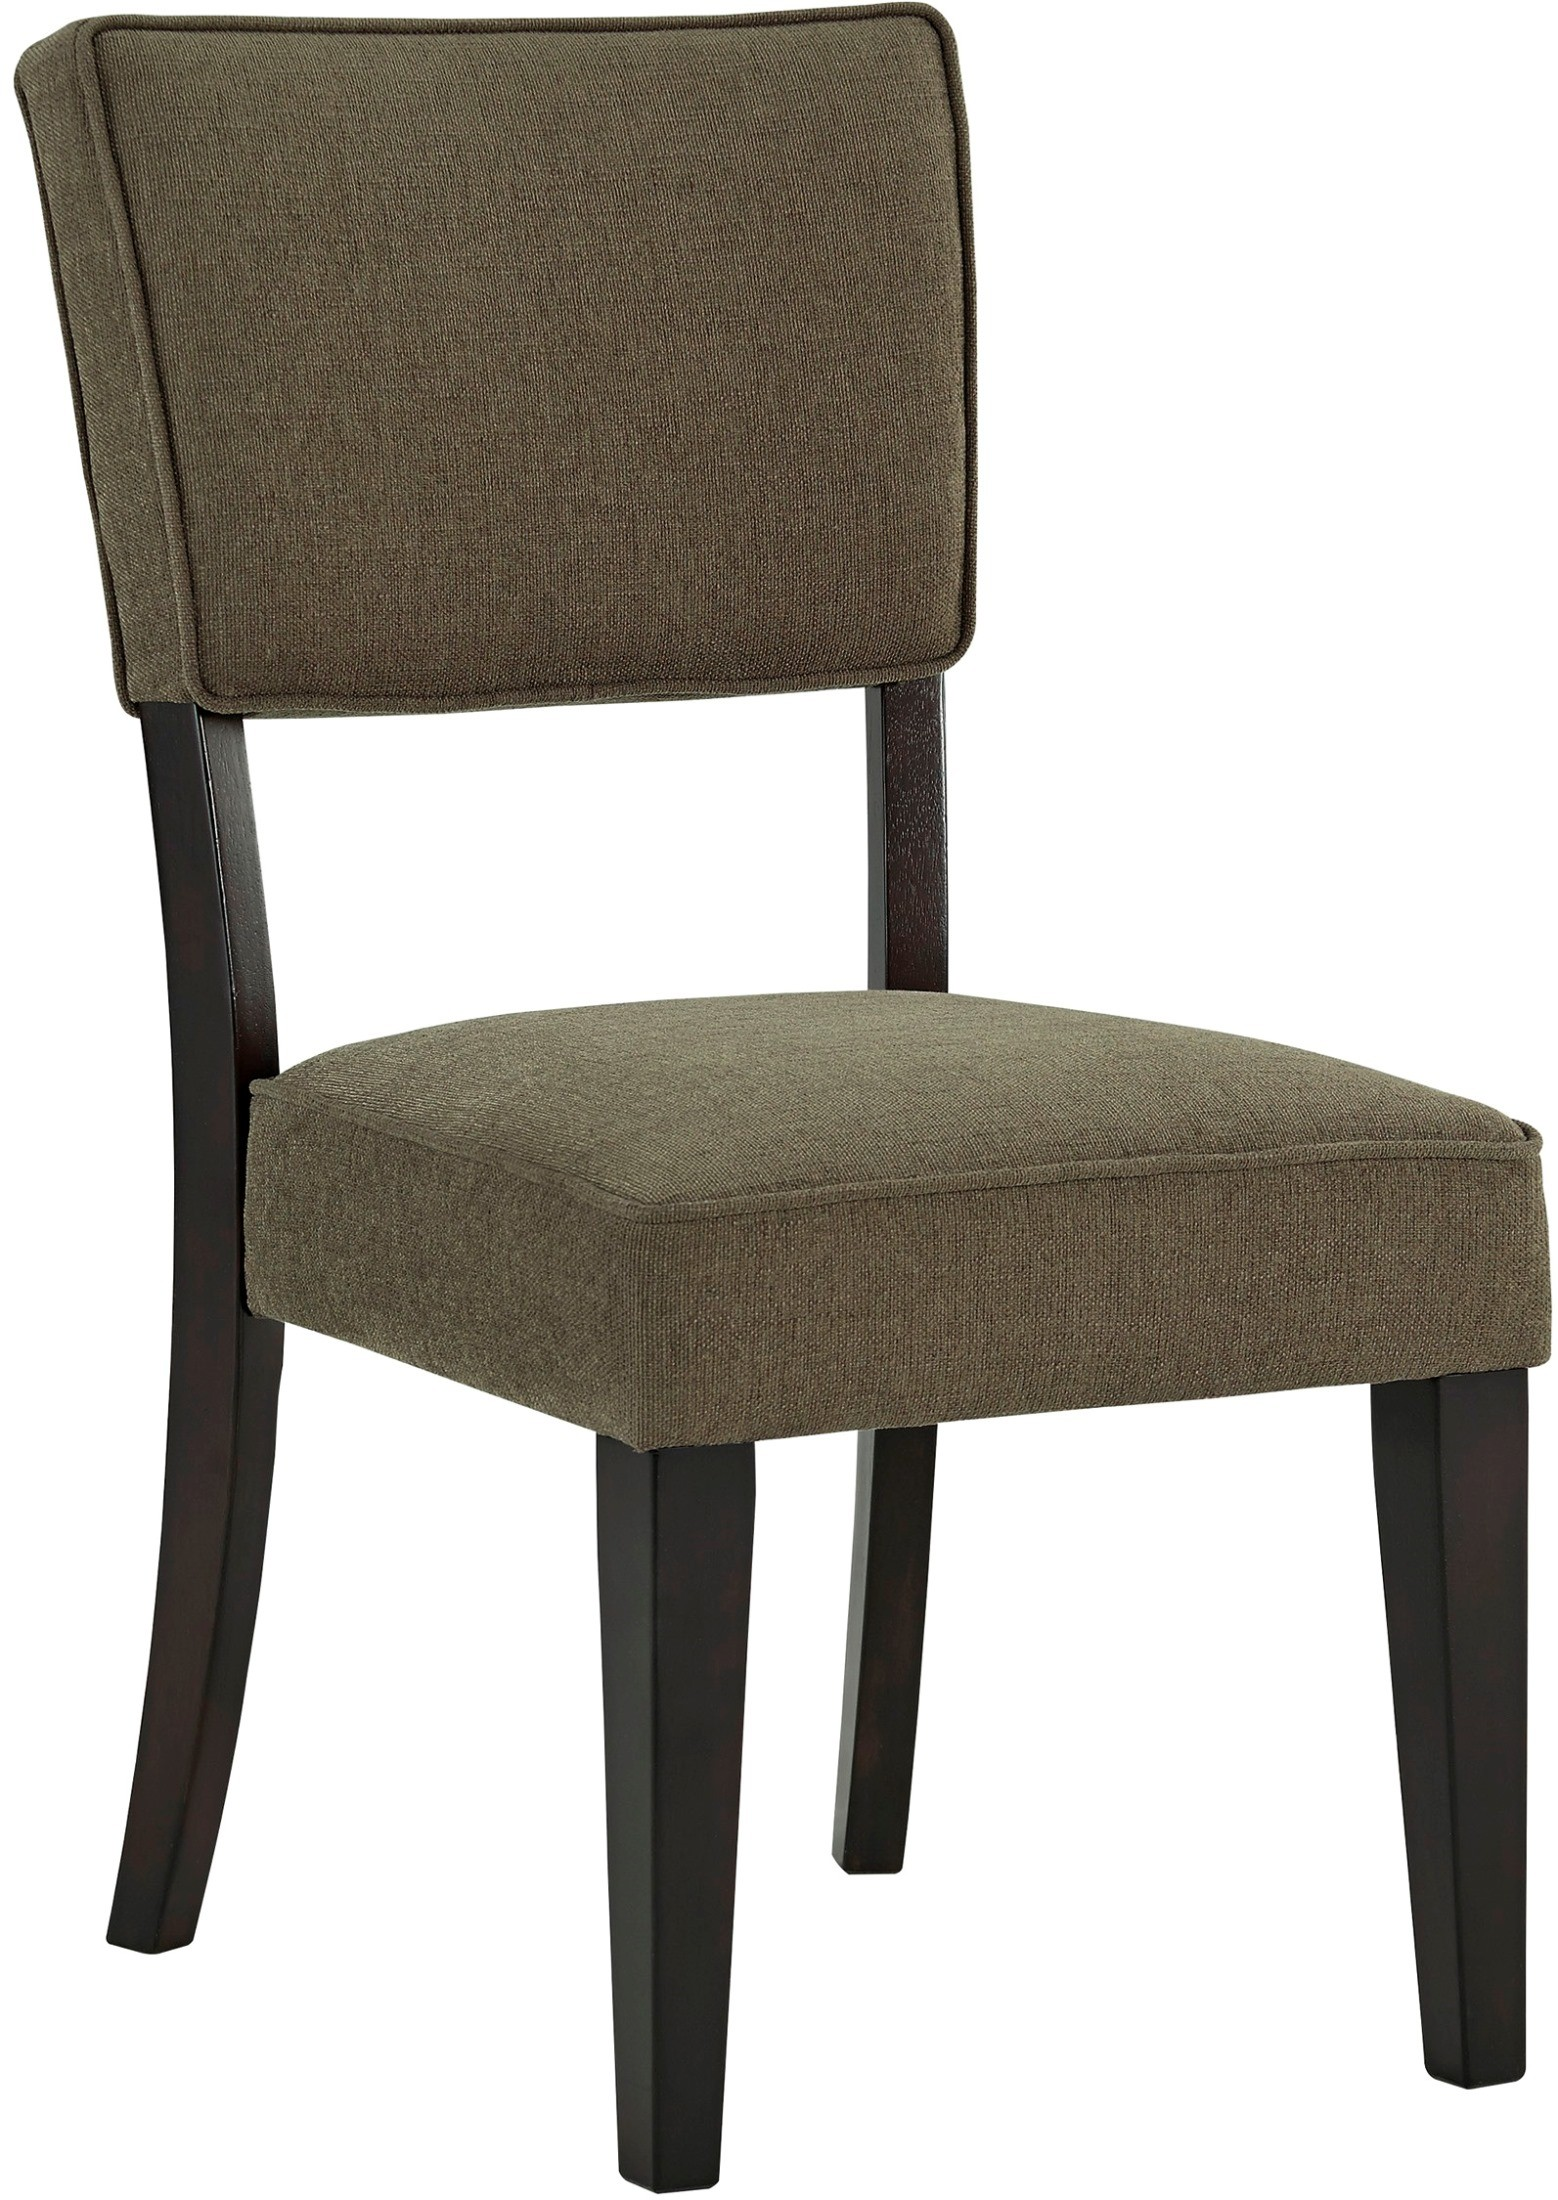 Gavelston green dining upholstered side chair set of 2 for Upholstered dining chairs